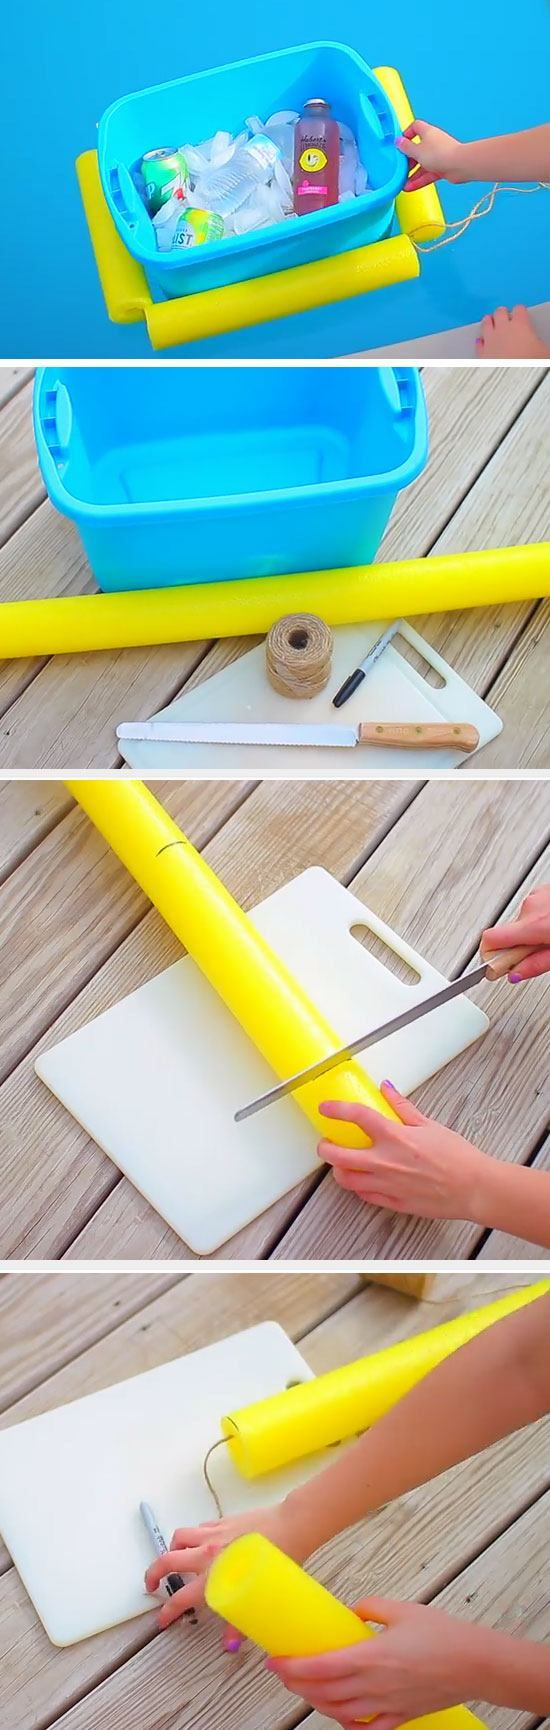 Pool Cooler   DIY Pool Party Ideas for Teens